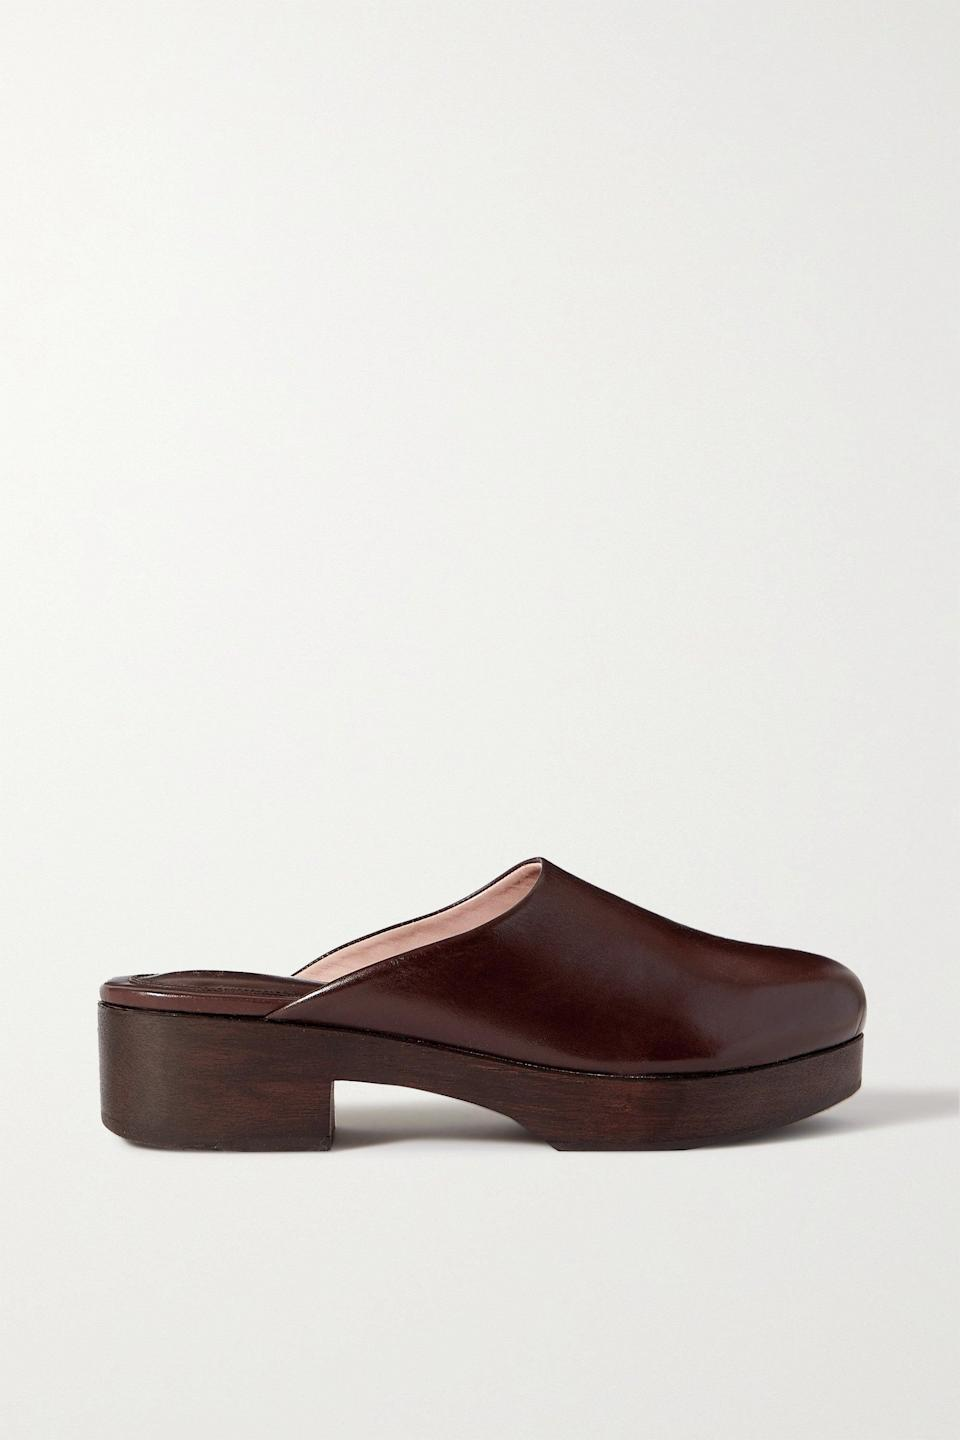 """<h2> Clogs </h2><br>""""<a href=""""https://www.refinery29.com/en-us/2020/10/10098450/womens-clogs-trend"""" rel=""""nofollow noopener"""" target=""""_blank"""" data-ylk=""""slk:The clog has made an unexpected and cool comeback"""" class=""""link rapid-noclick-resp"""">The clog has made an unexpected and cool comeback</a>, and the must-have collaboration of the season comes from The Frankie Shop x Porte and Paire. These styles are set to become a staple in every wardrobe. """"<br><br>- Libby Page, Senior Fashion Market Editor at NET-A-PORTER <br><br><strong>Porte & Paire x Frankie Shop</strong> Glossed-leather platform clogs, $, available at <a href=""""https://go.skimresources.com/?id=30283X879131&url=https%3A%2F%2Fwww.net-a-porter.com%2Fen-us%2Fshop%2Fproduct%2Fporte-paire%2Fshoes%2Fslip-ons%2Fplus-frankie-shop-glossed-leather-platform-clogs%2F11452292647421877"""" rel=""""nofollow noopener"""" target=""""_blank"""" data-ylk=""""slk:Net-A-Porter"""" class=""""link rapid-noclick-resp"""">Net-A-Porter</a>"""